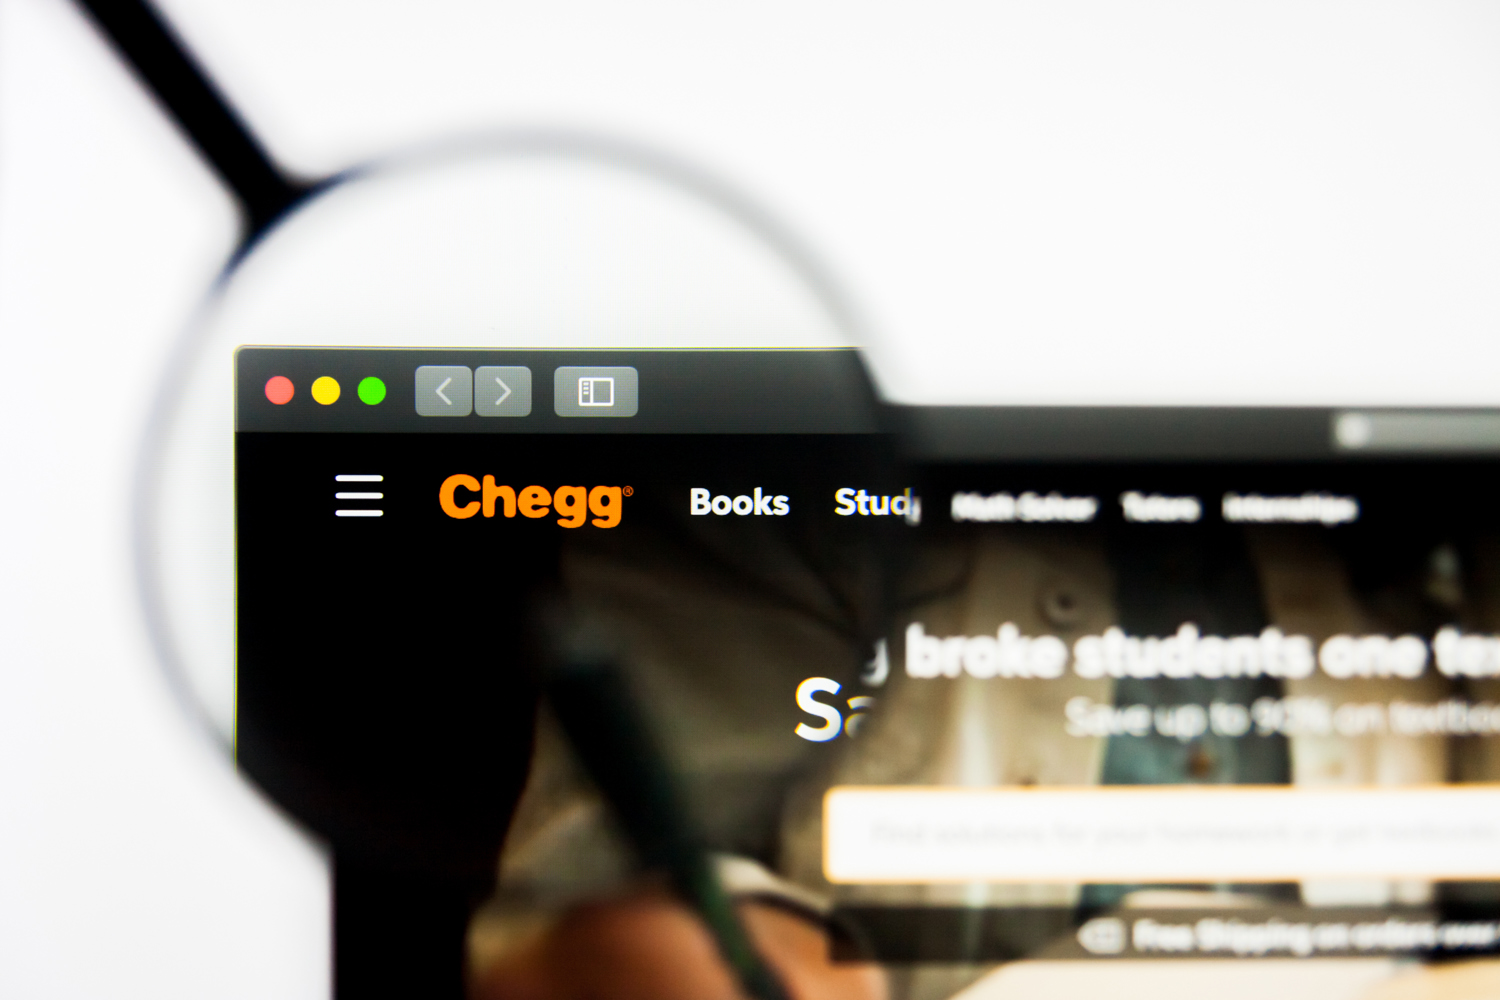 CHEGG (NYSE:CHGG) Stock Pick for Summer 2021